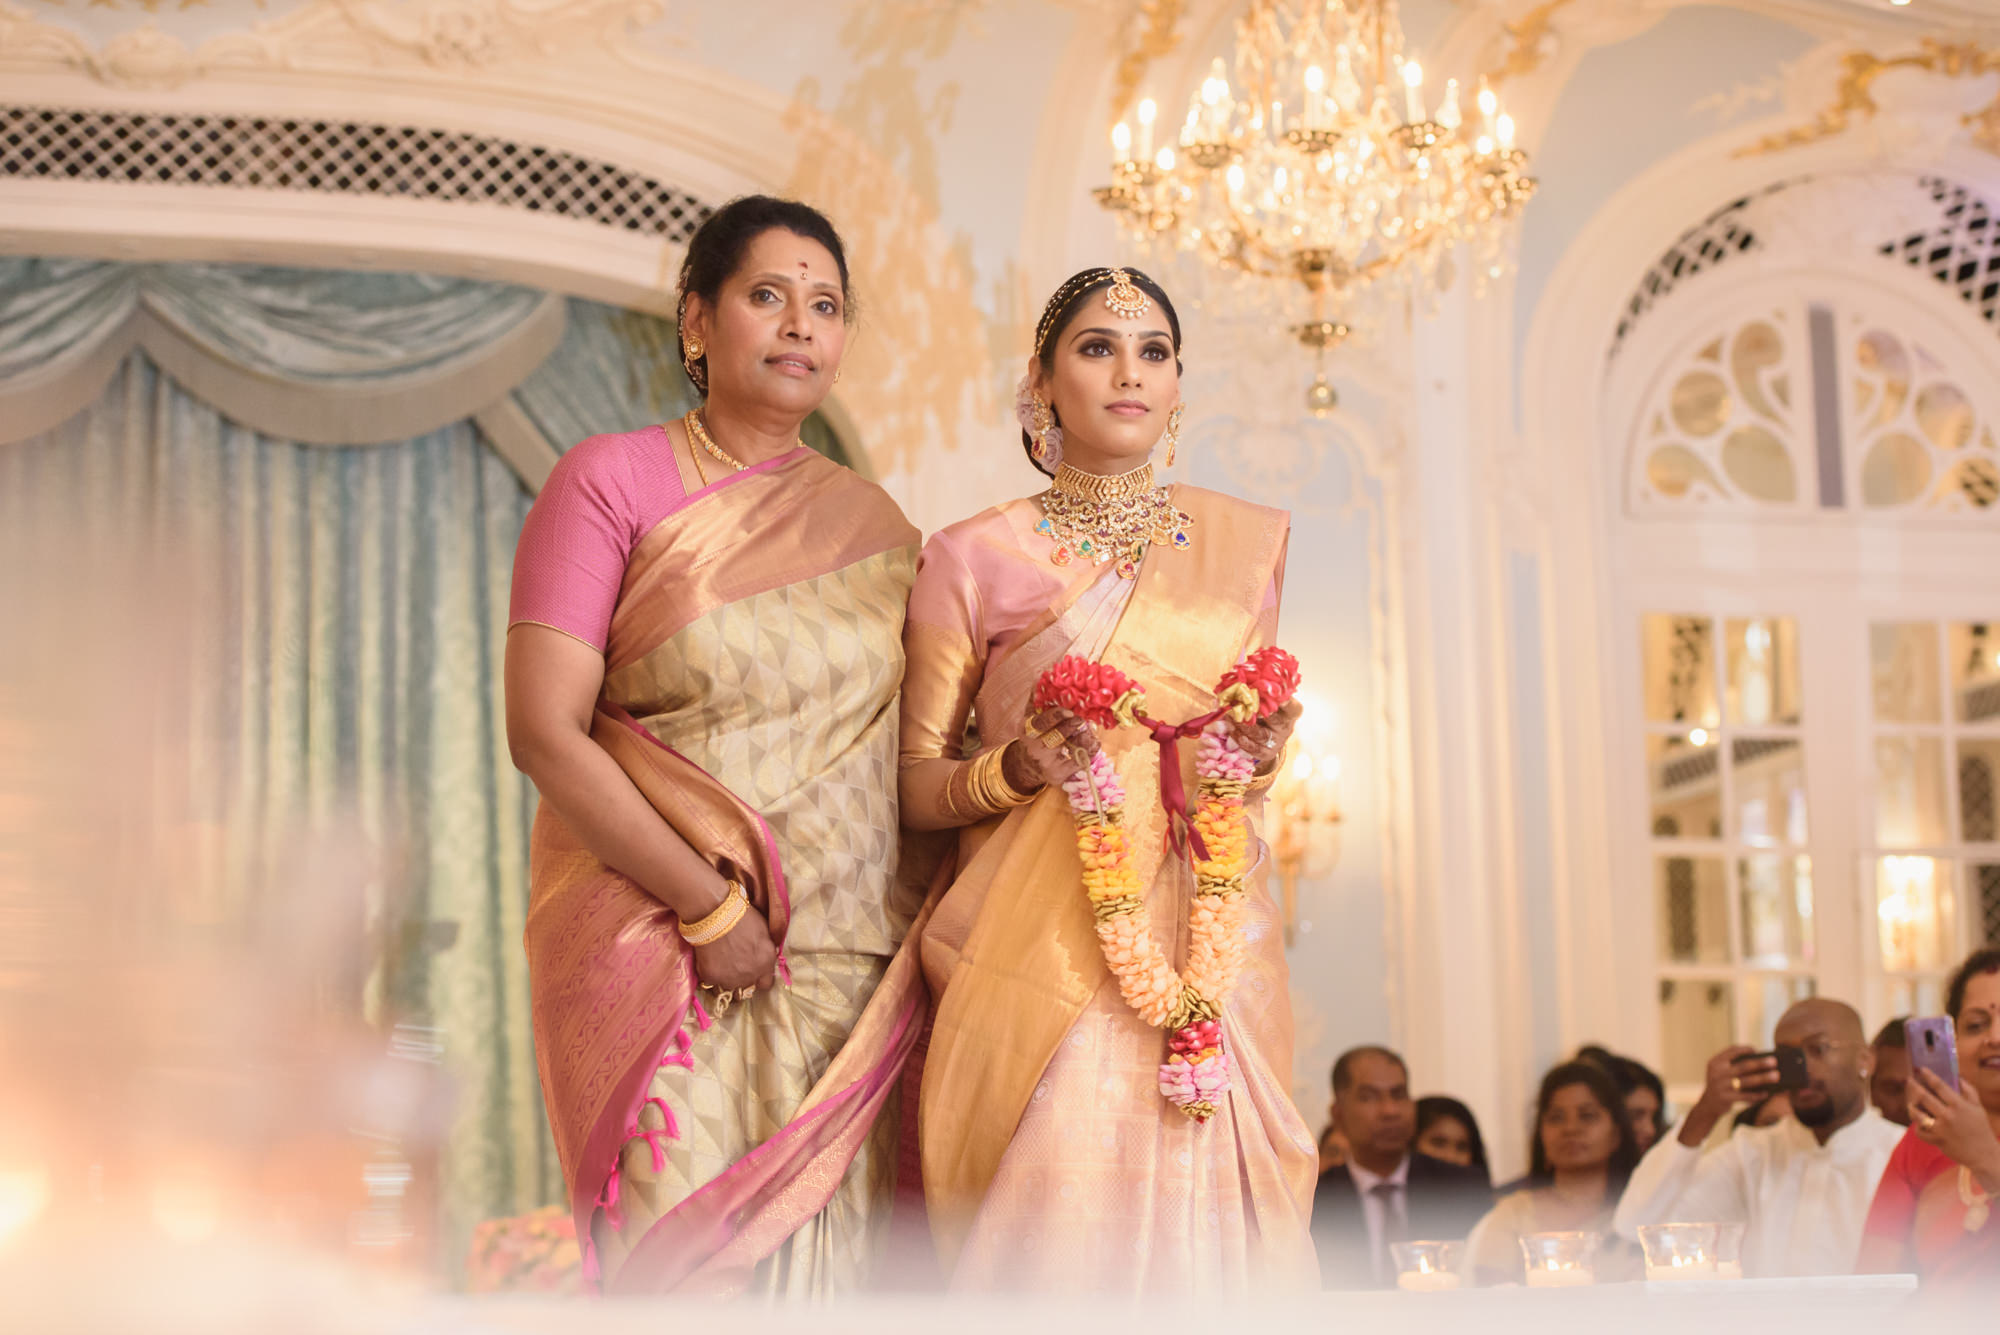 Tamil Gujrati hindu wedding photography photographer london the savoy -54.jpg